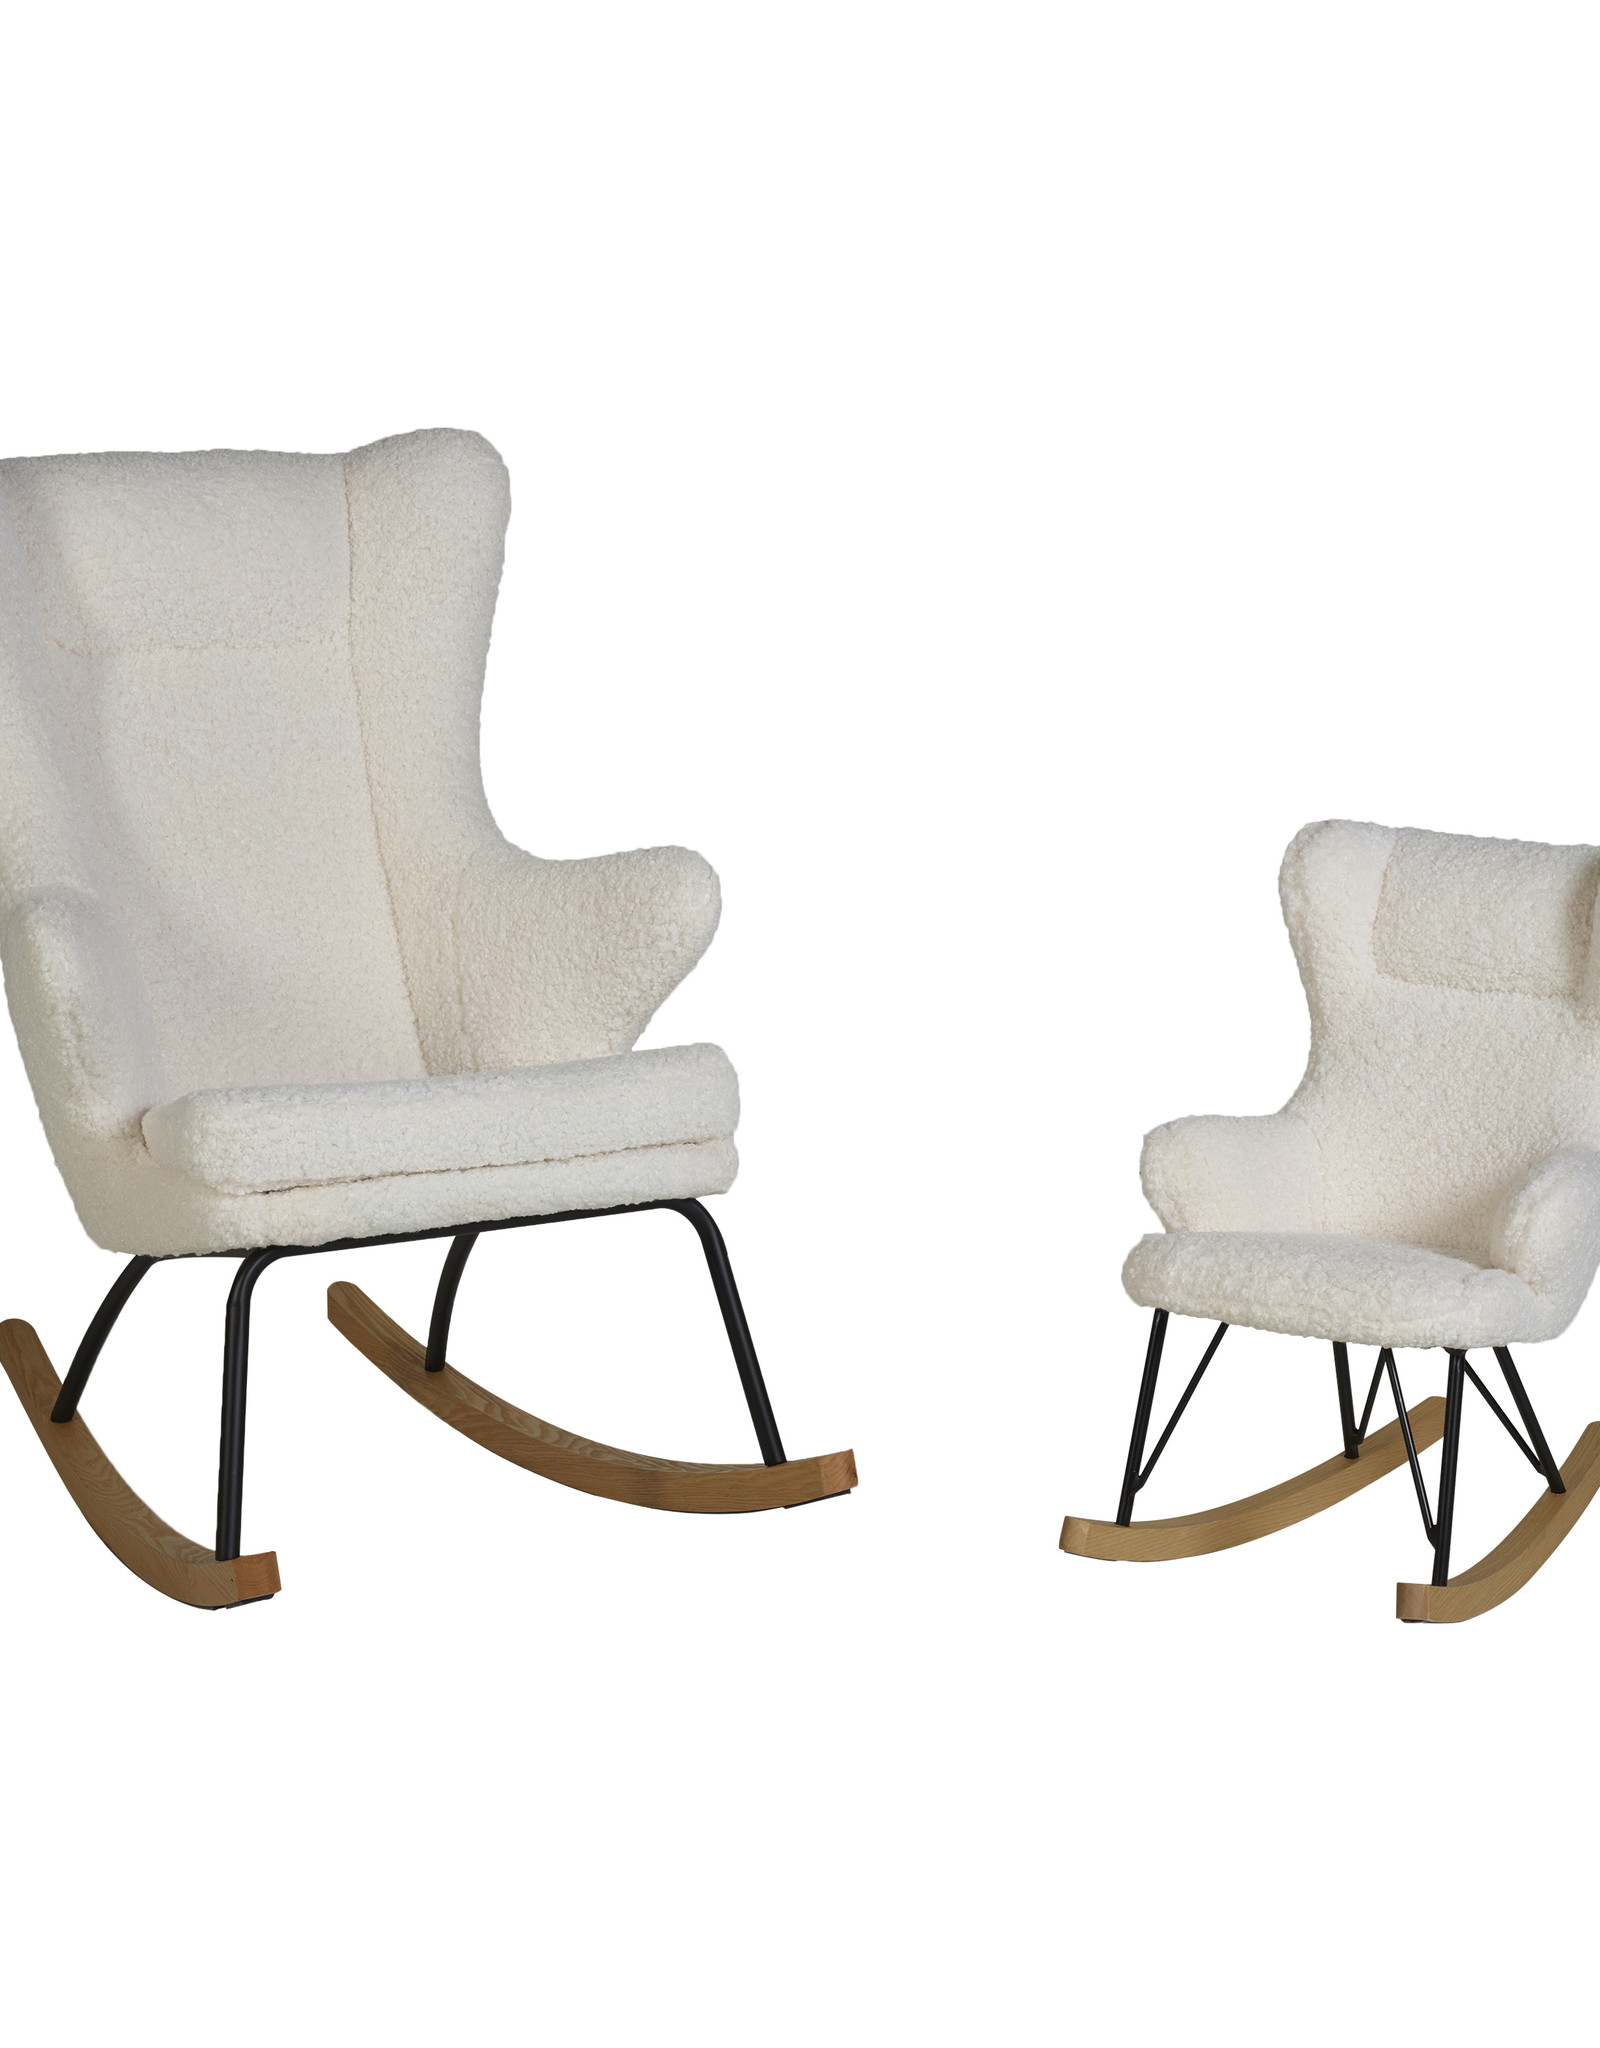 Quax Rocking Kids Chair De Luxe - Limited Edition